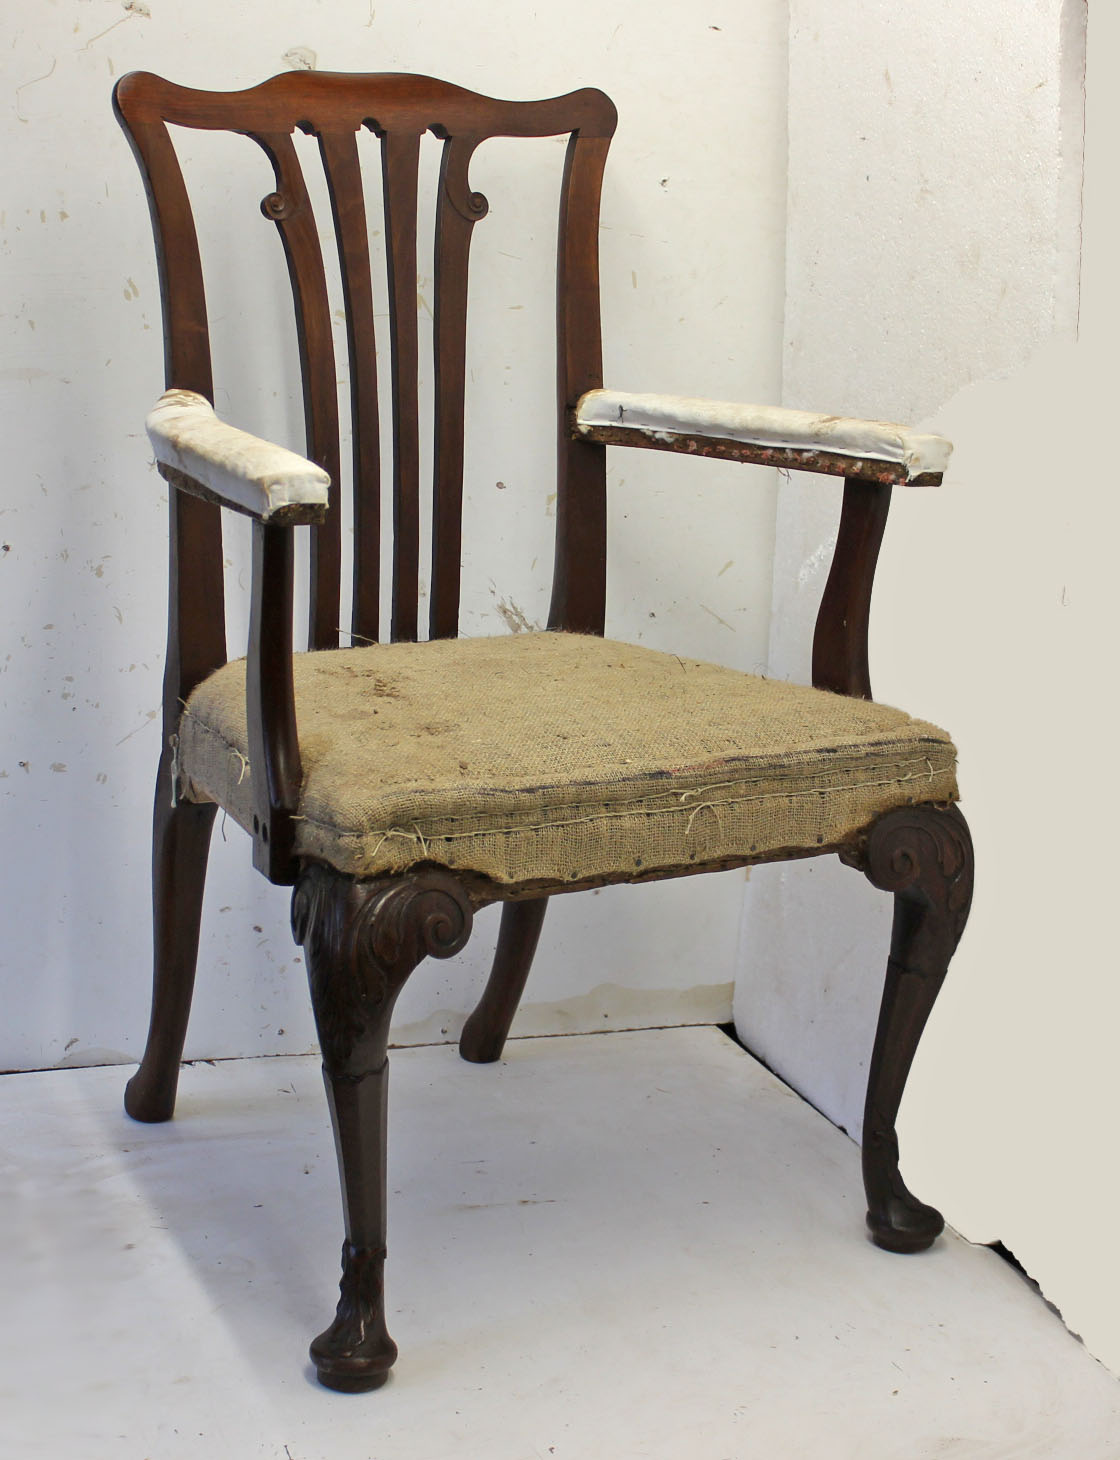 Antique chair restoration. An Irish George II walnut and mahogany carver & OldChairs.ie - We run weekend restoration courses. We also sell and ...